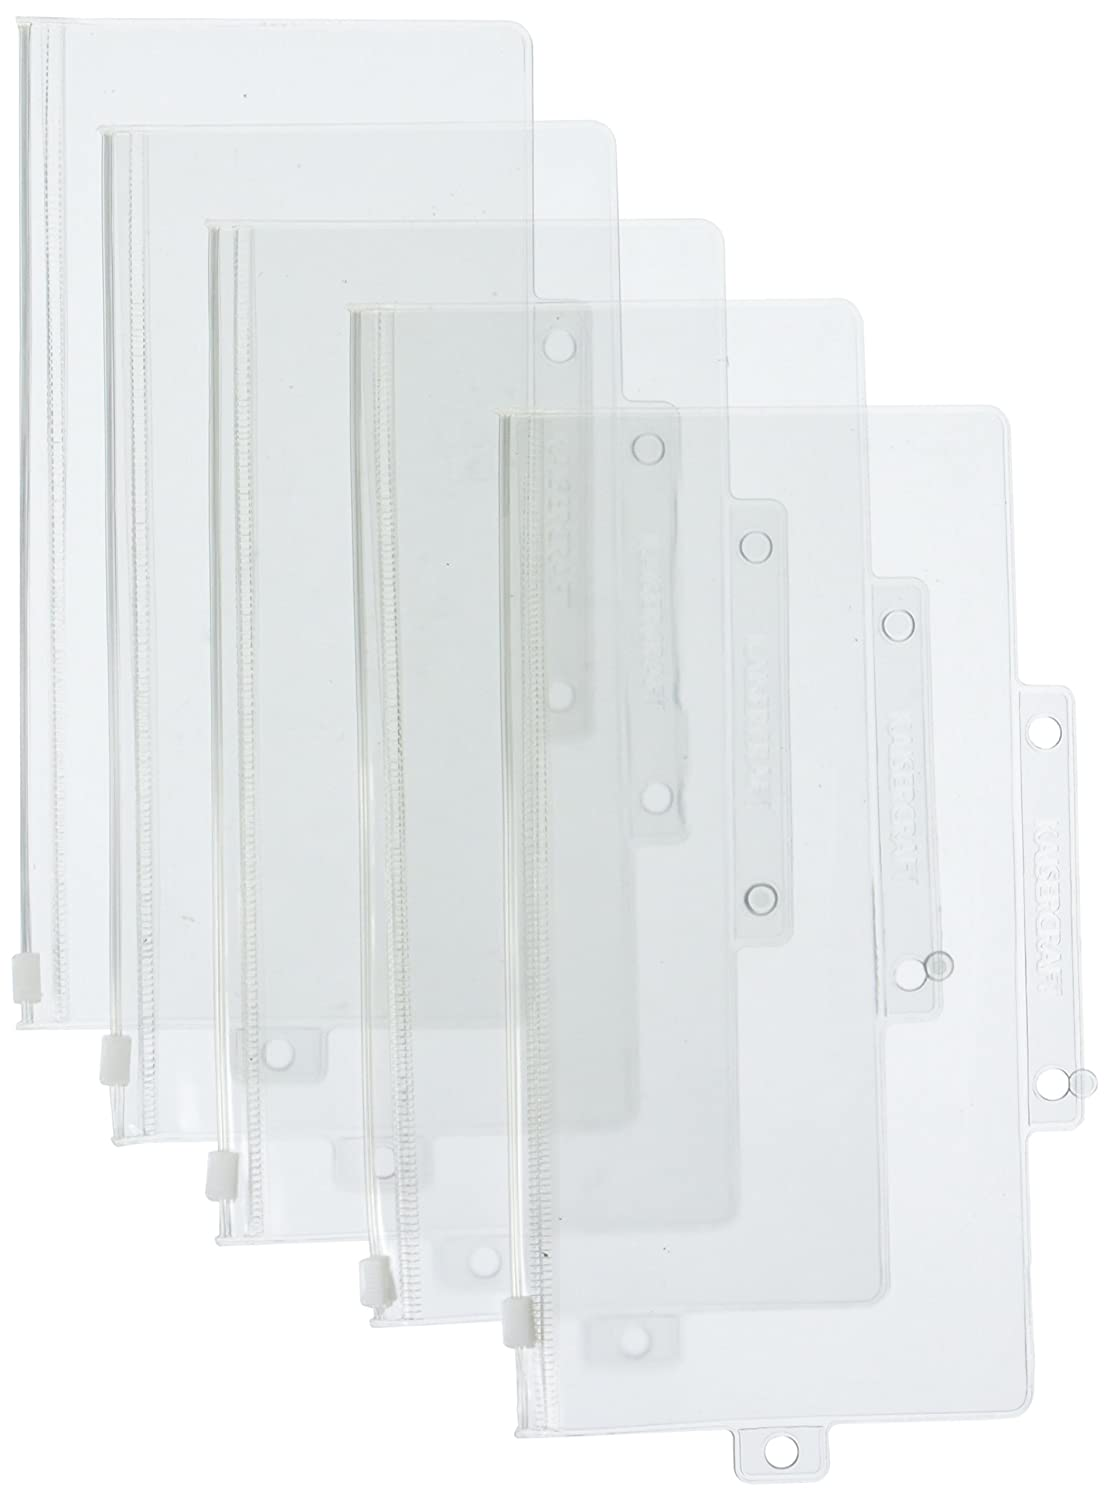 Kaisercraft-Pack and Store Storage Pockets DL, 8-1/4-Inch by 4-Inch, 5-Pack Notions - In Network FD301